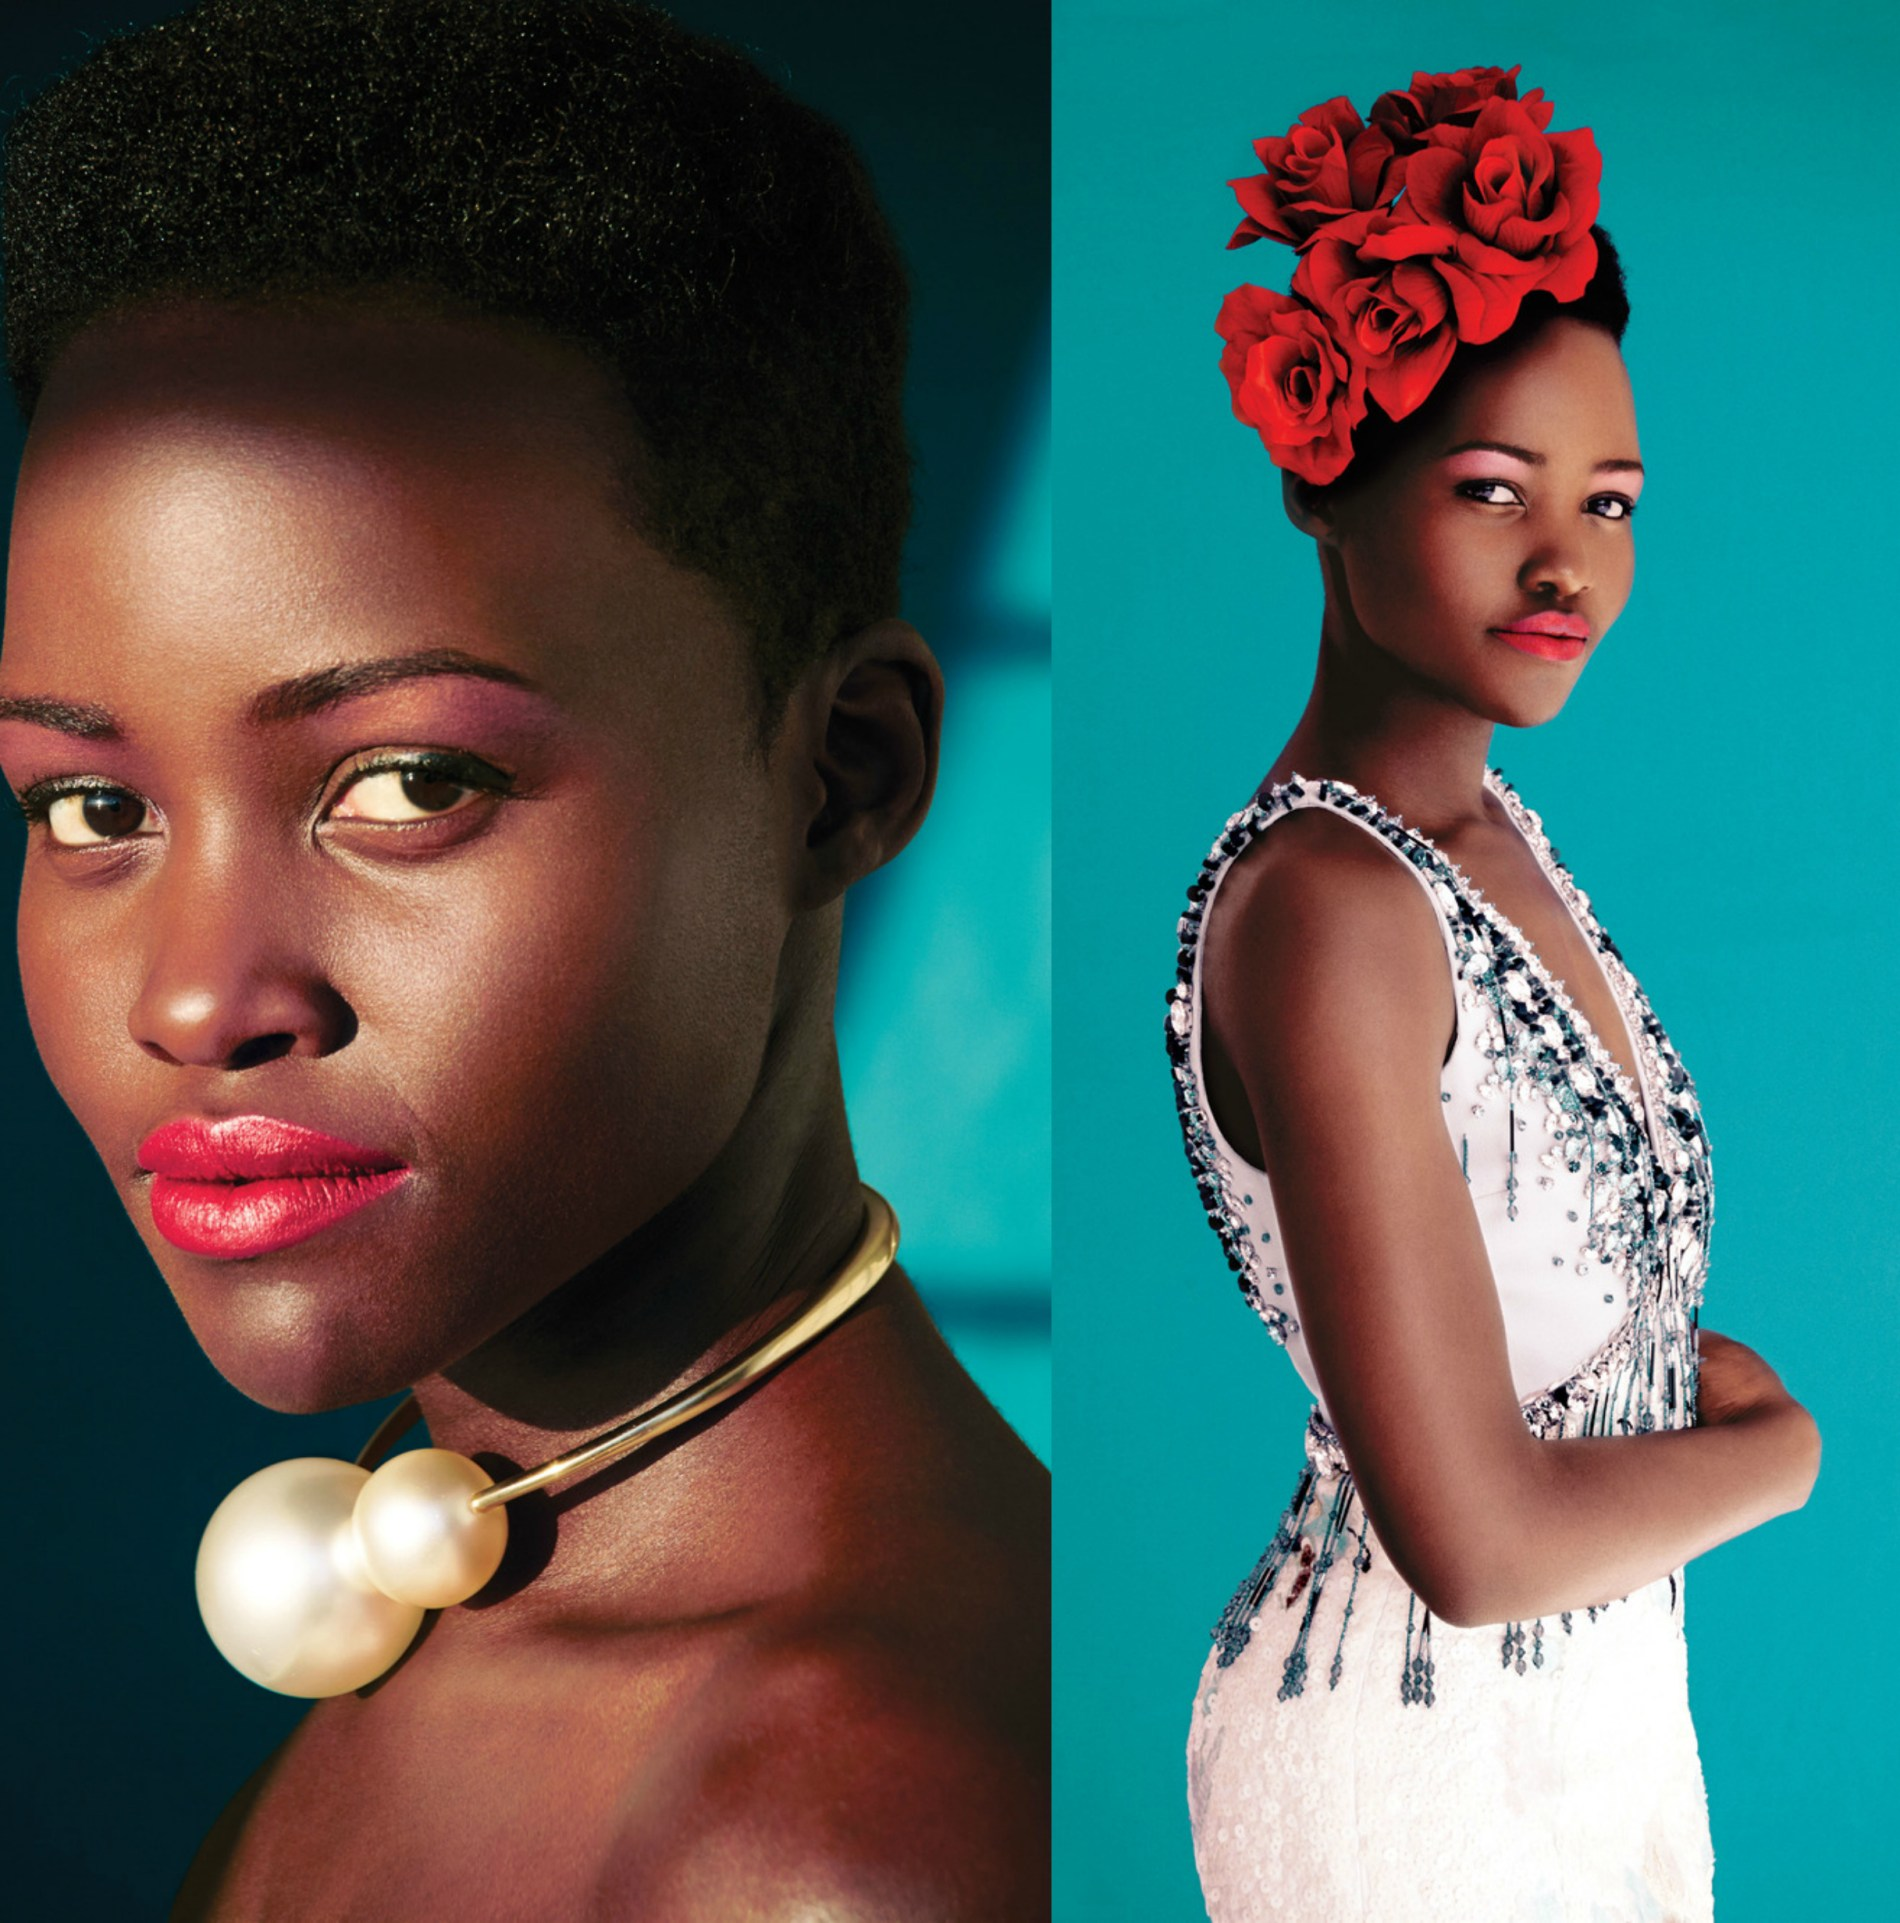 lupita nyongo'o fashion it girl for new york magazine